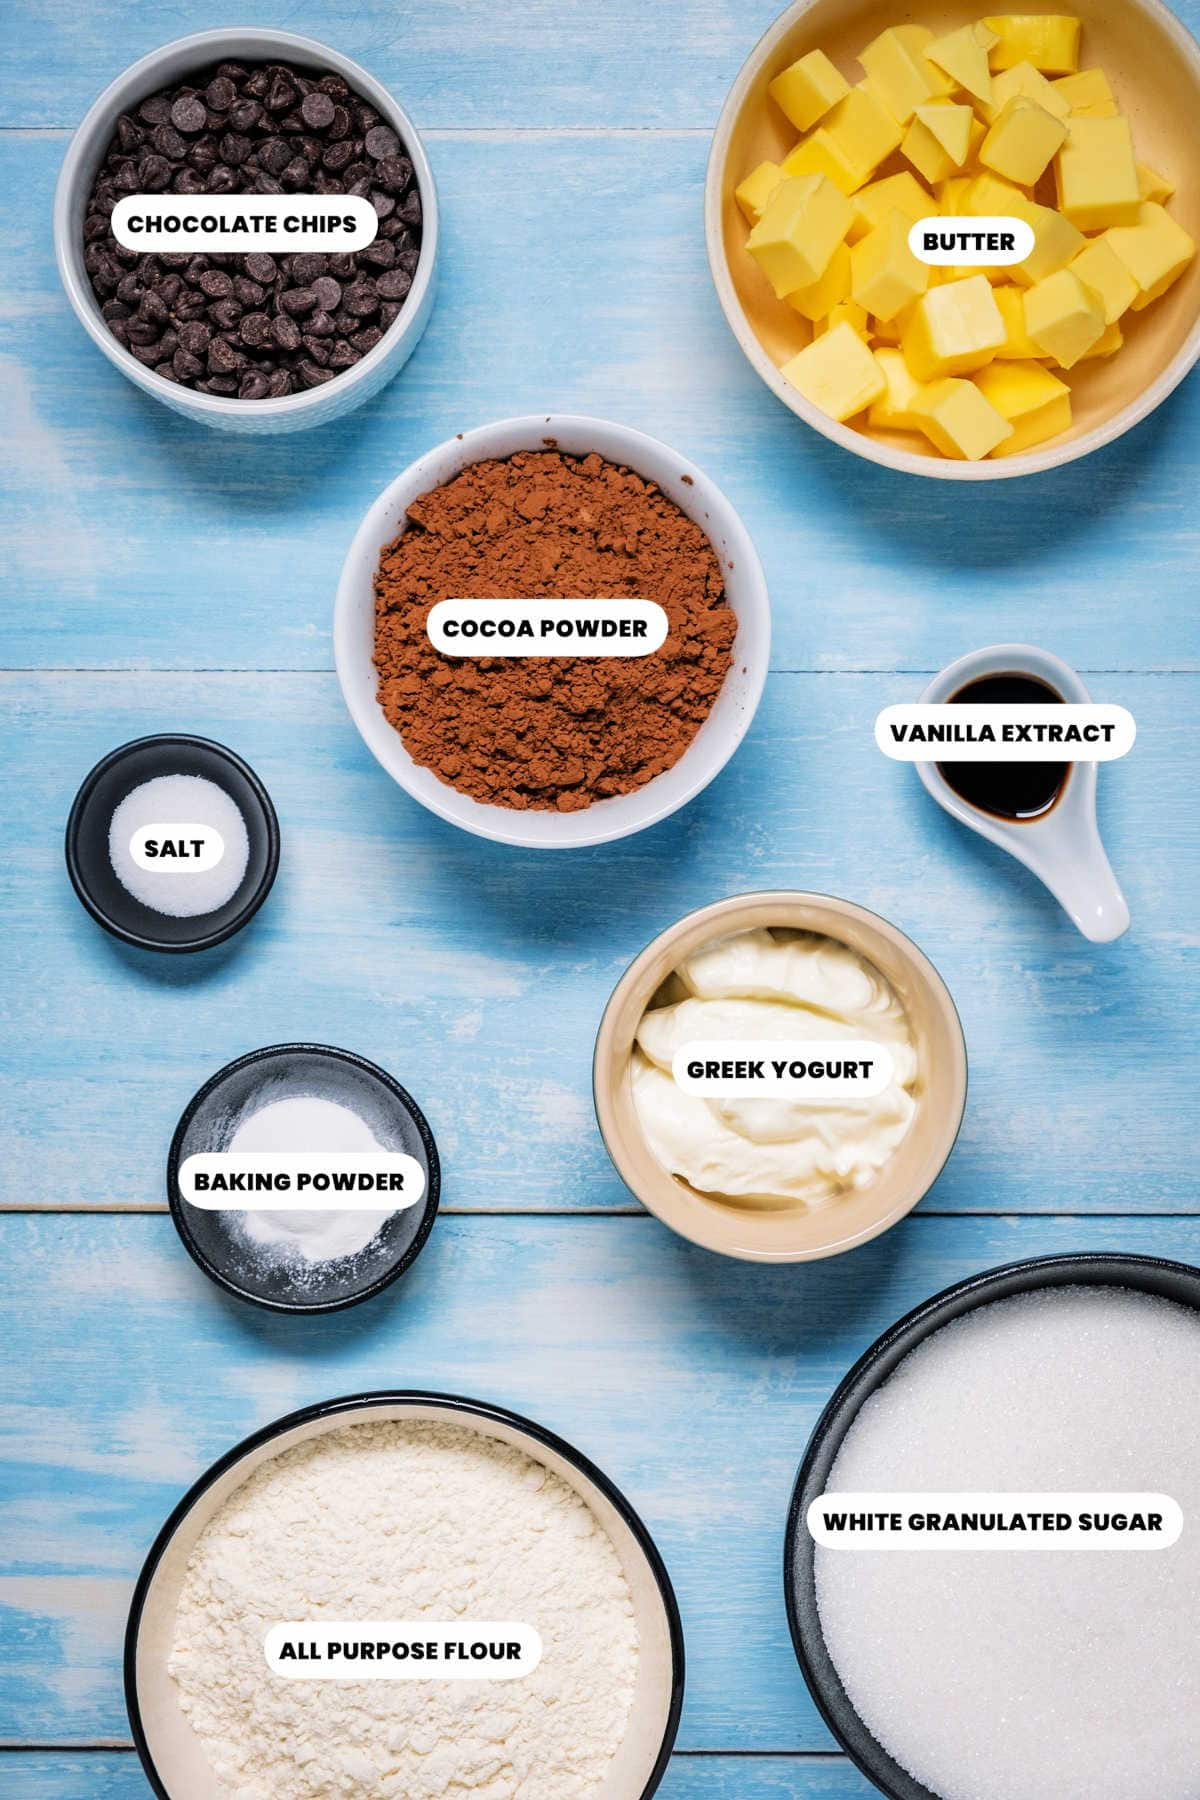 Photo of the ingredients needed to make eggless brownies.